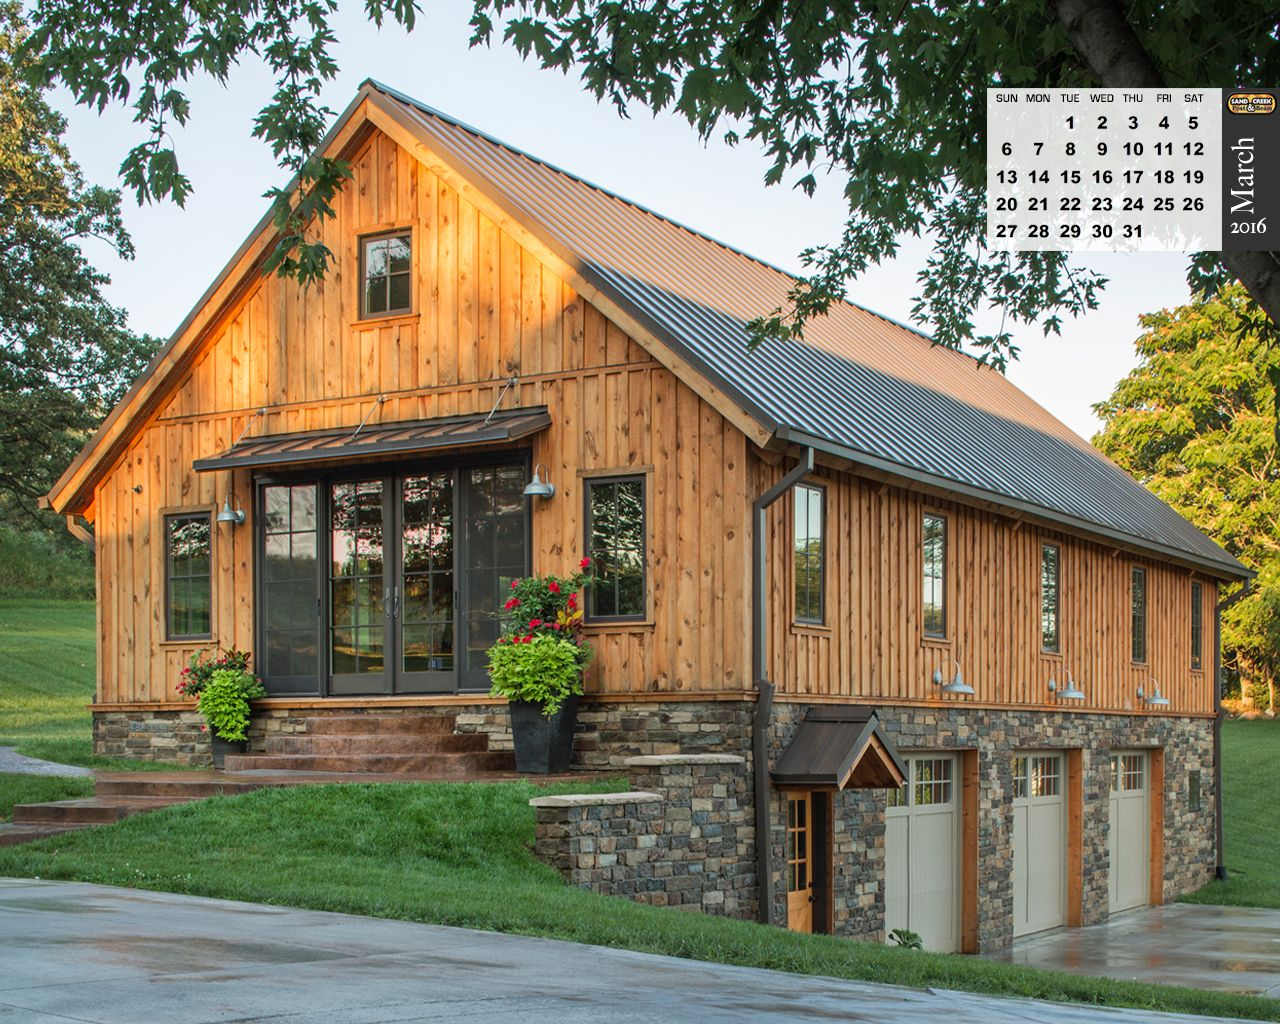 Barn wood home projects photo galleries ponderosa for Gambrel barn plans with living quarters